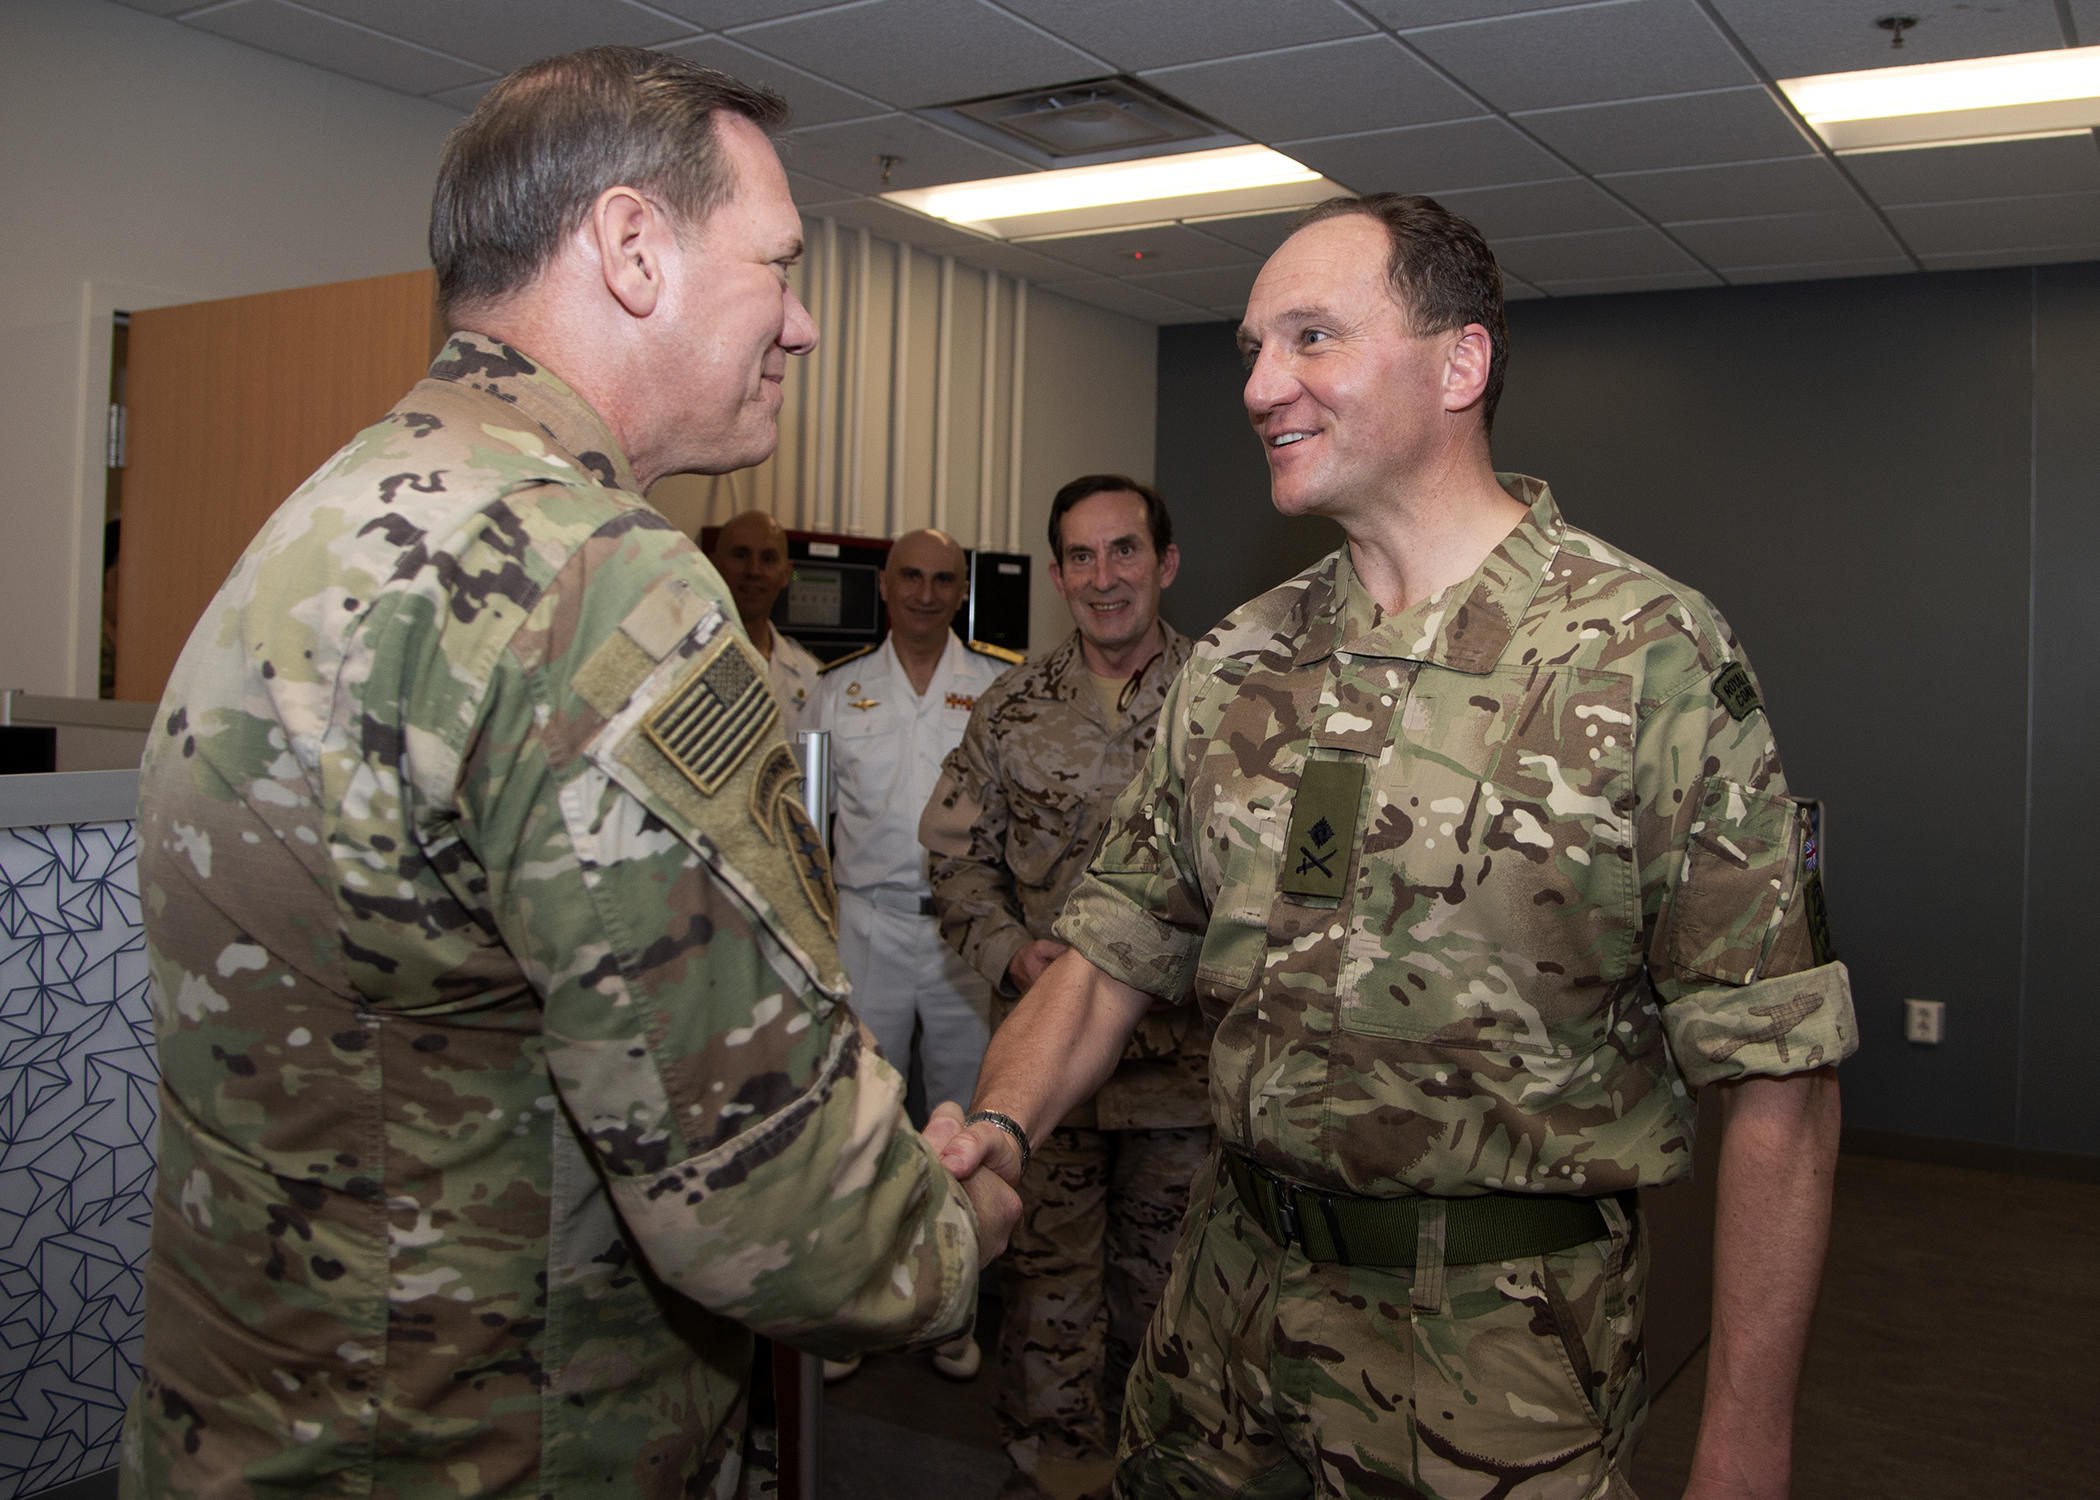 U.S. Army Maj. Gen. James D. Craig, left, commanding general, Combined Joint Task Force-Horn of Africa (CJTF-HOA), shakes hands with Royal Marines Maj. Gen. Charlie Strickland, outgoing operation commander, European Union Naval Force ATALANTA, at Camp Lemonnier, Djibouti, March 8, 2019. Strickland visited CJTF-HOA during a theater turnover with European Union partners. (U.S. Navy photo by Mass Communication Specialist 1st Class Nick Scott)